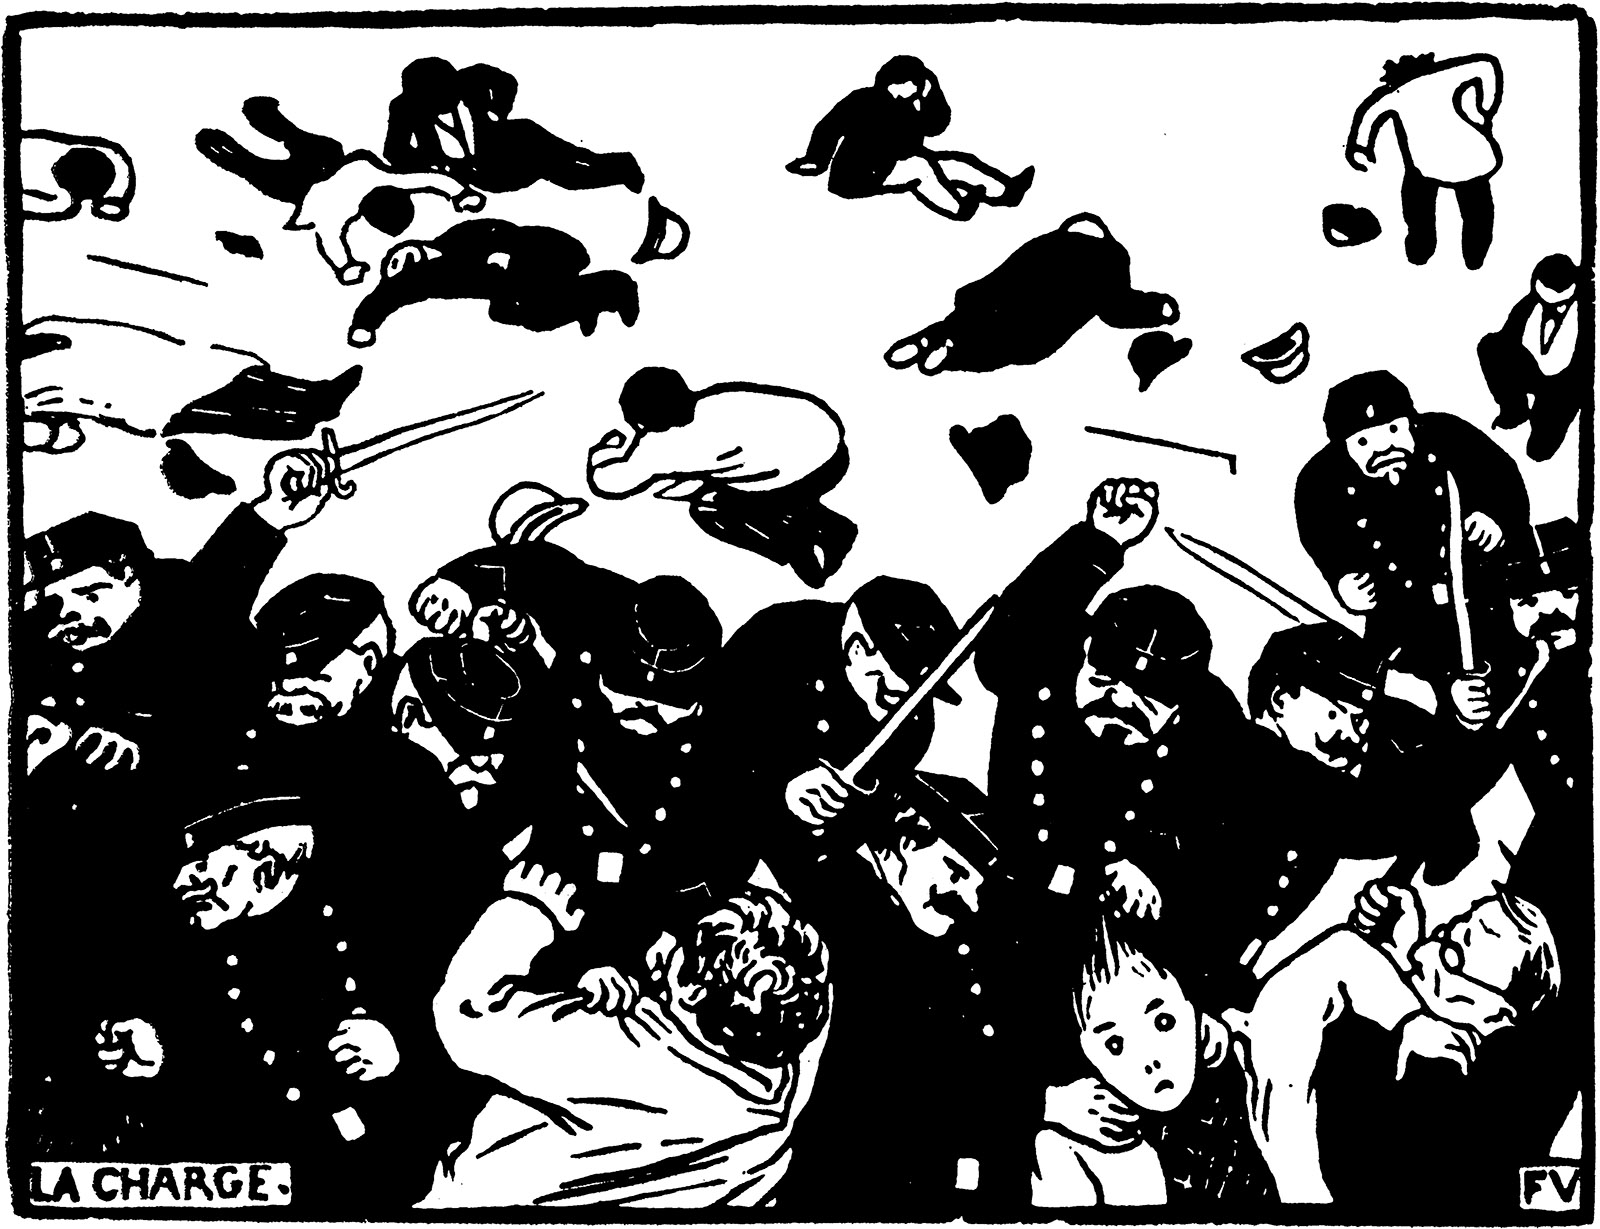 Drawing of people fighting